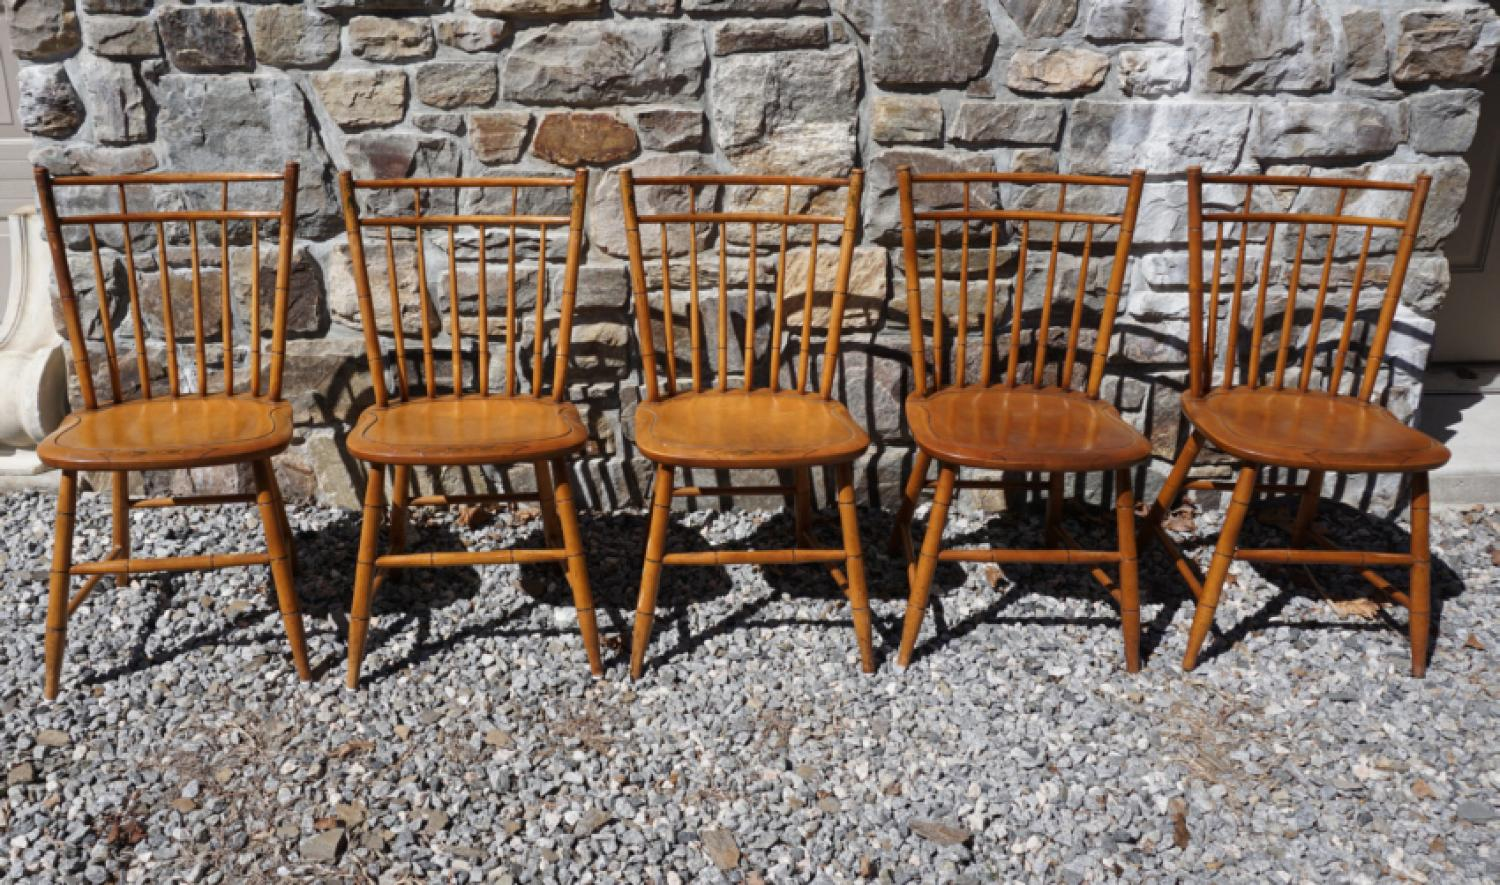 Hitchcock birdcage Windsor chairs set of 5